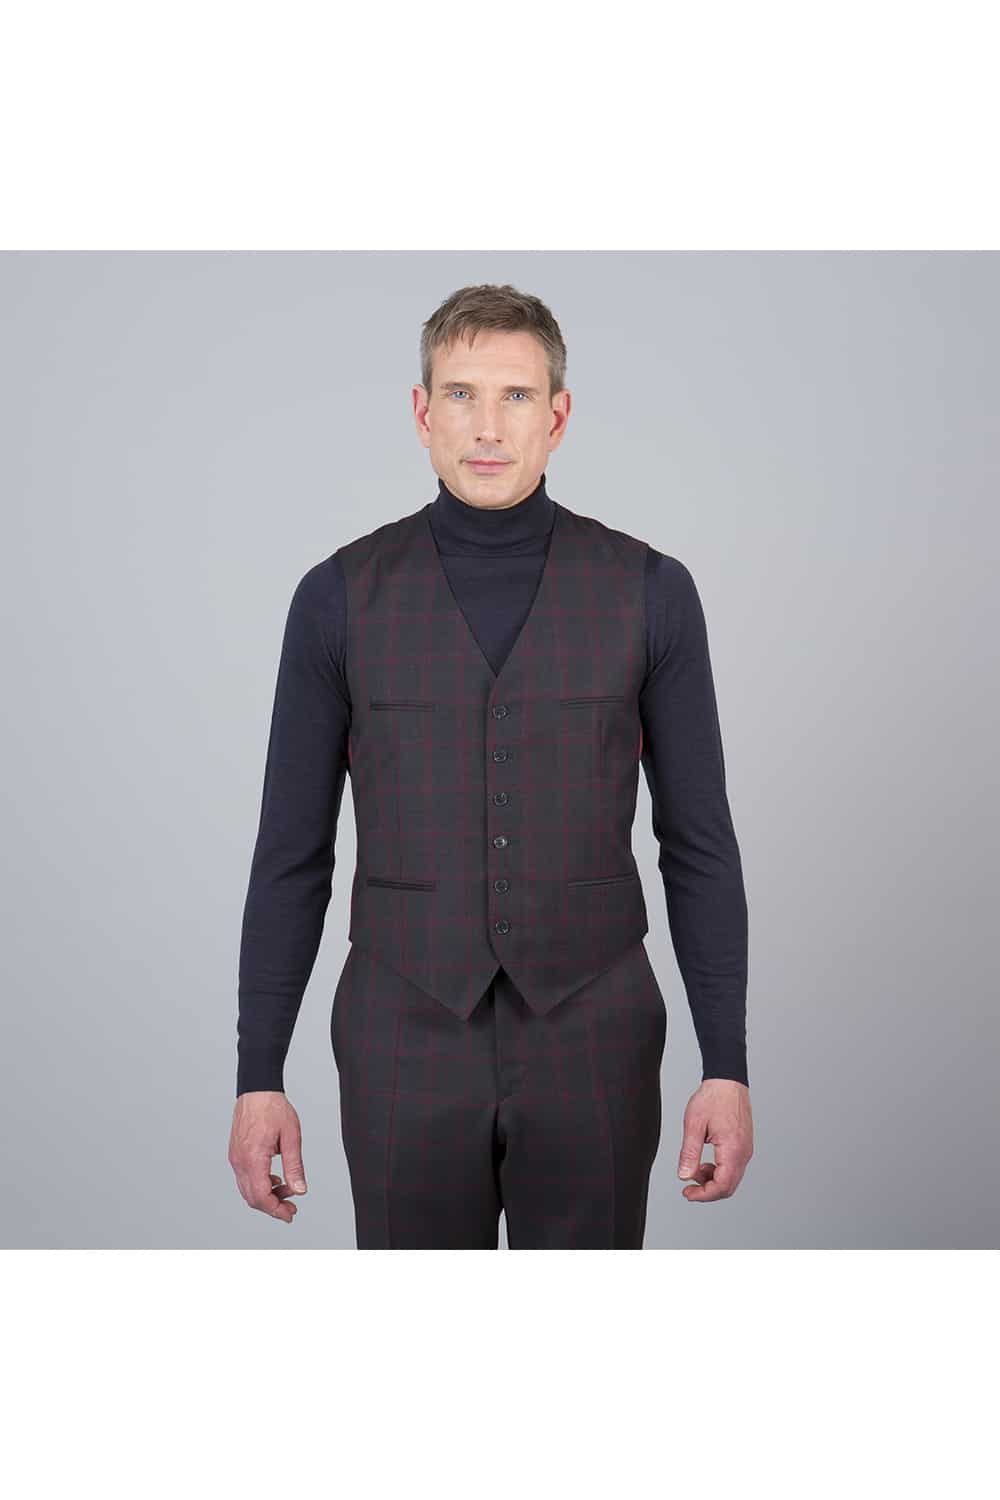 homme veston carreaux 3p tailleur Paris